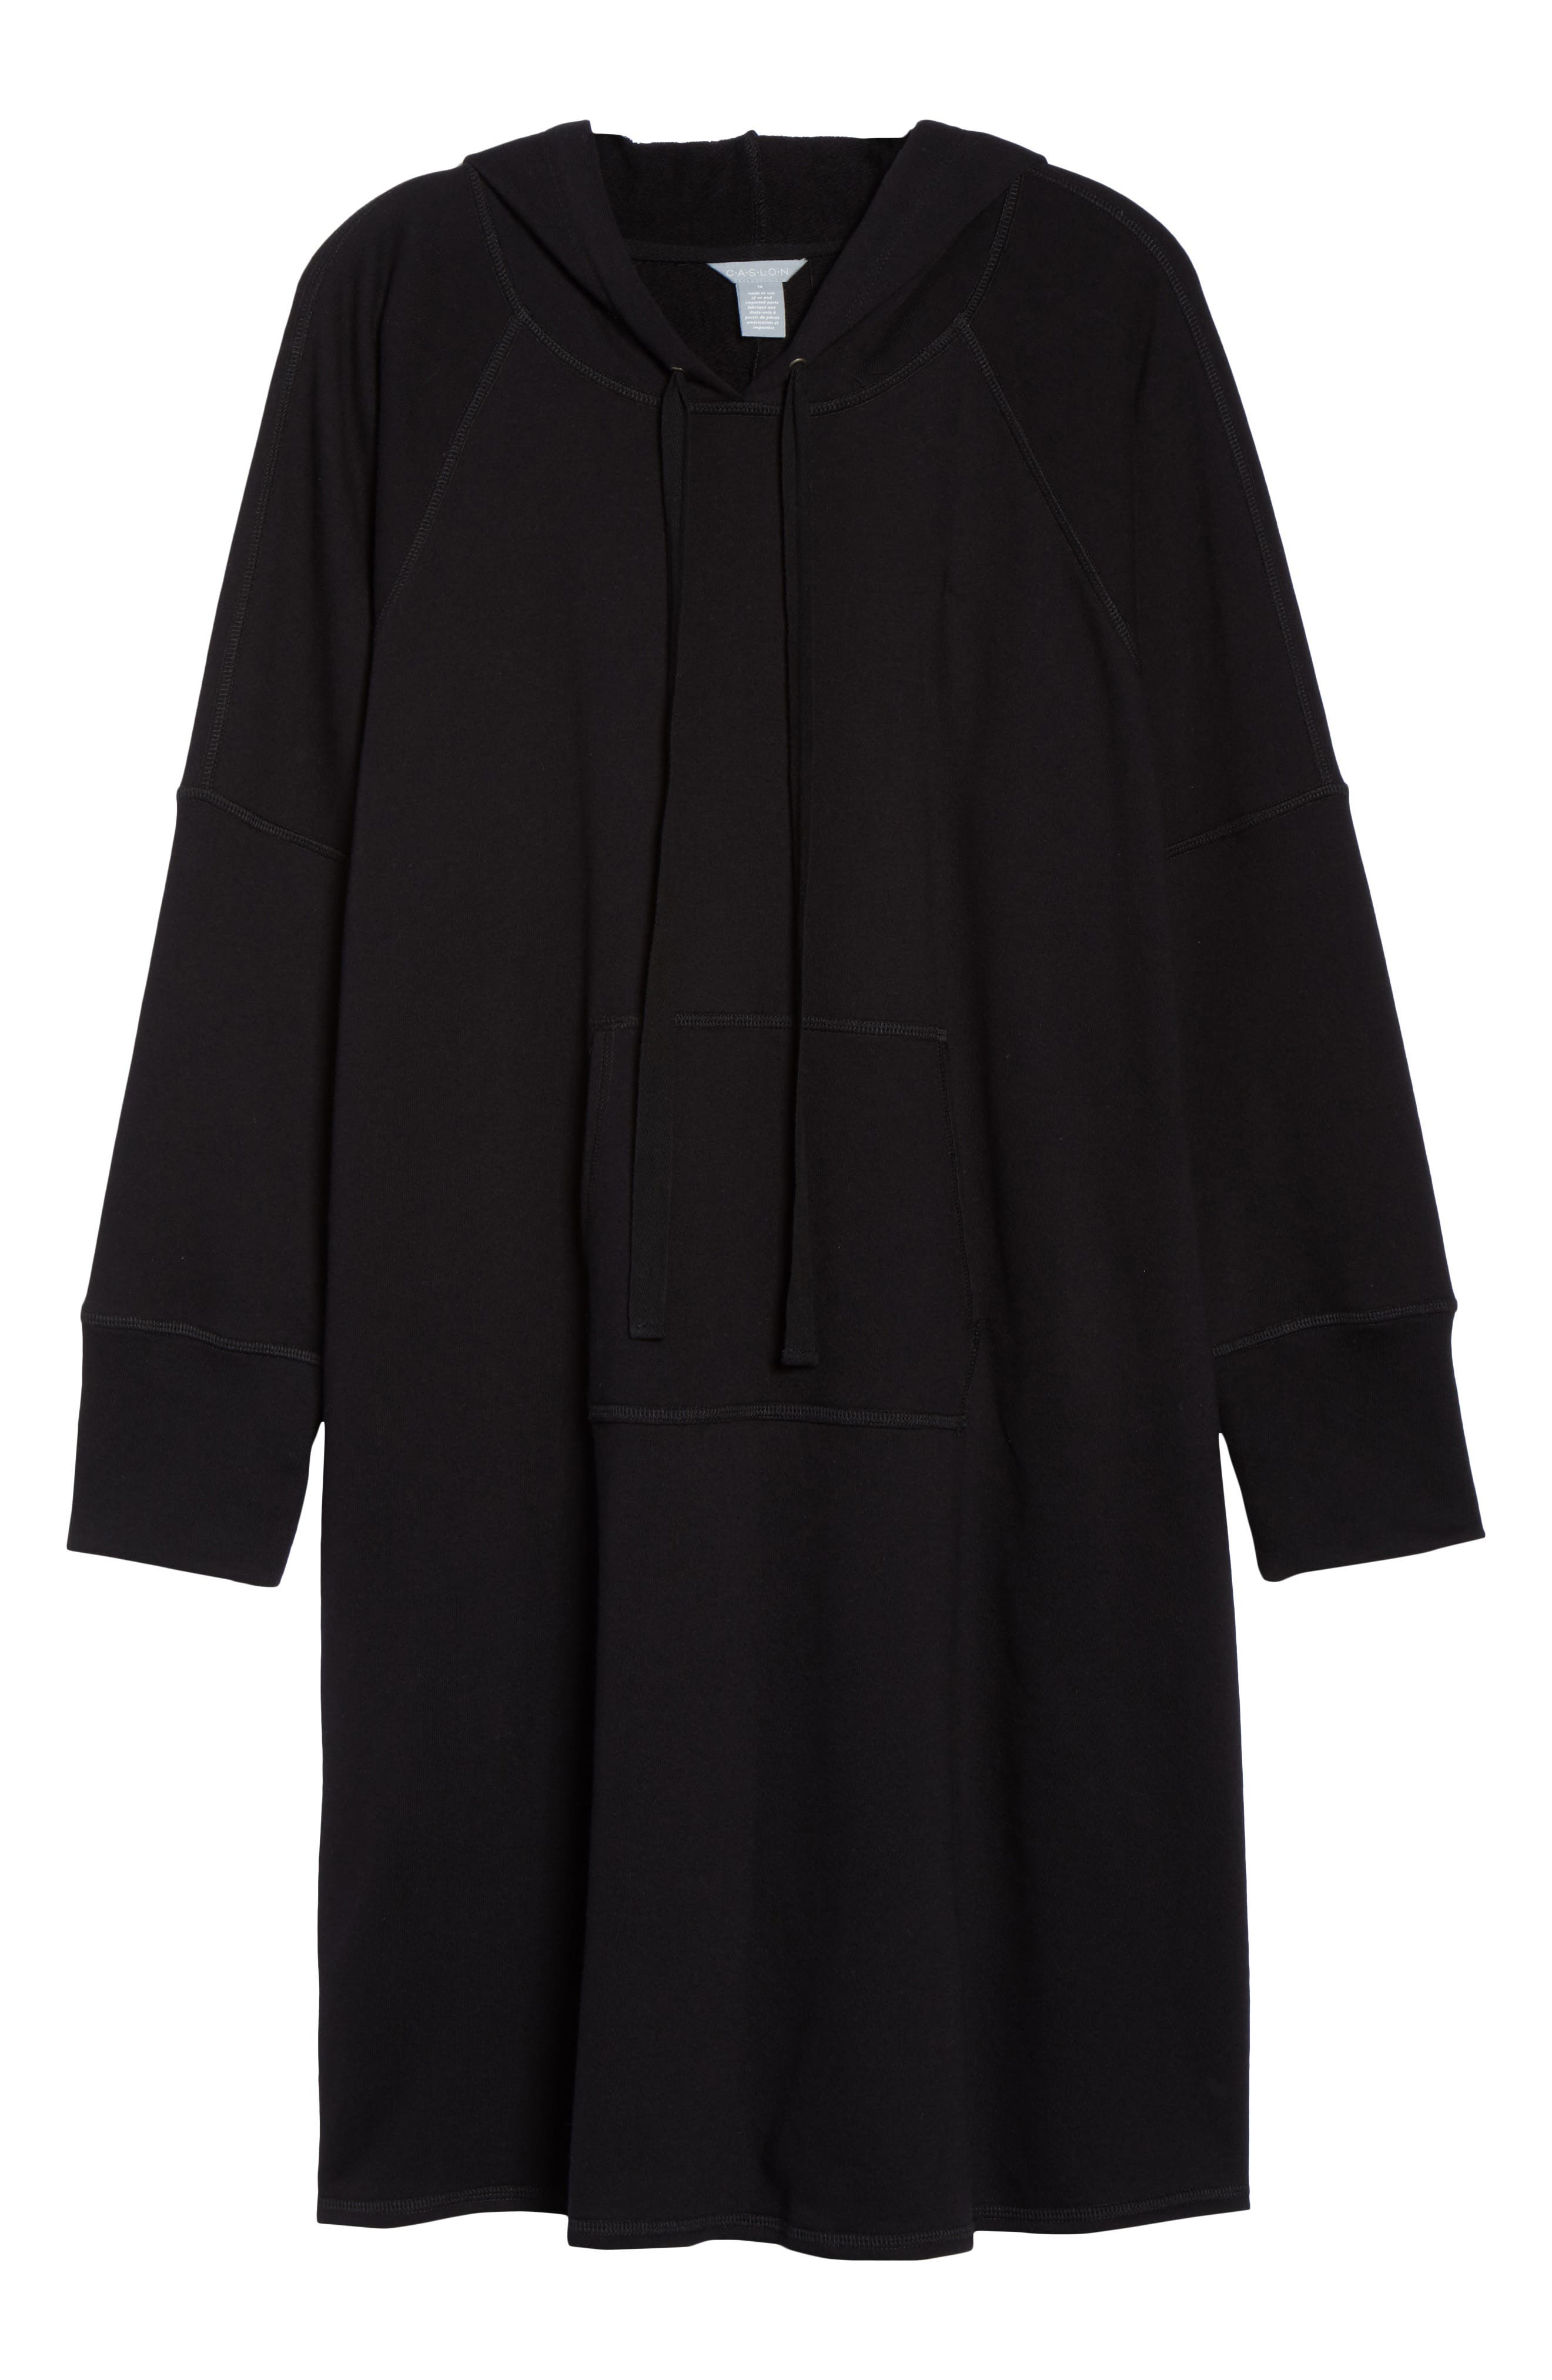 Hooded French Terry Dress,                             Alternate thumbnail 7, color,                             Black